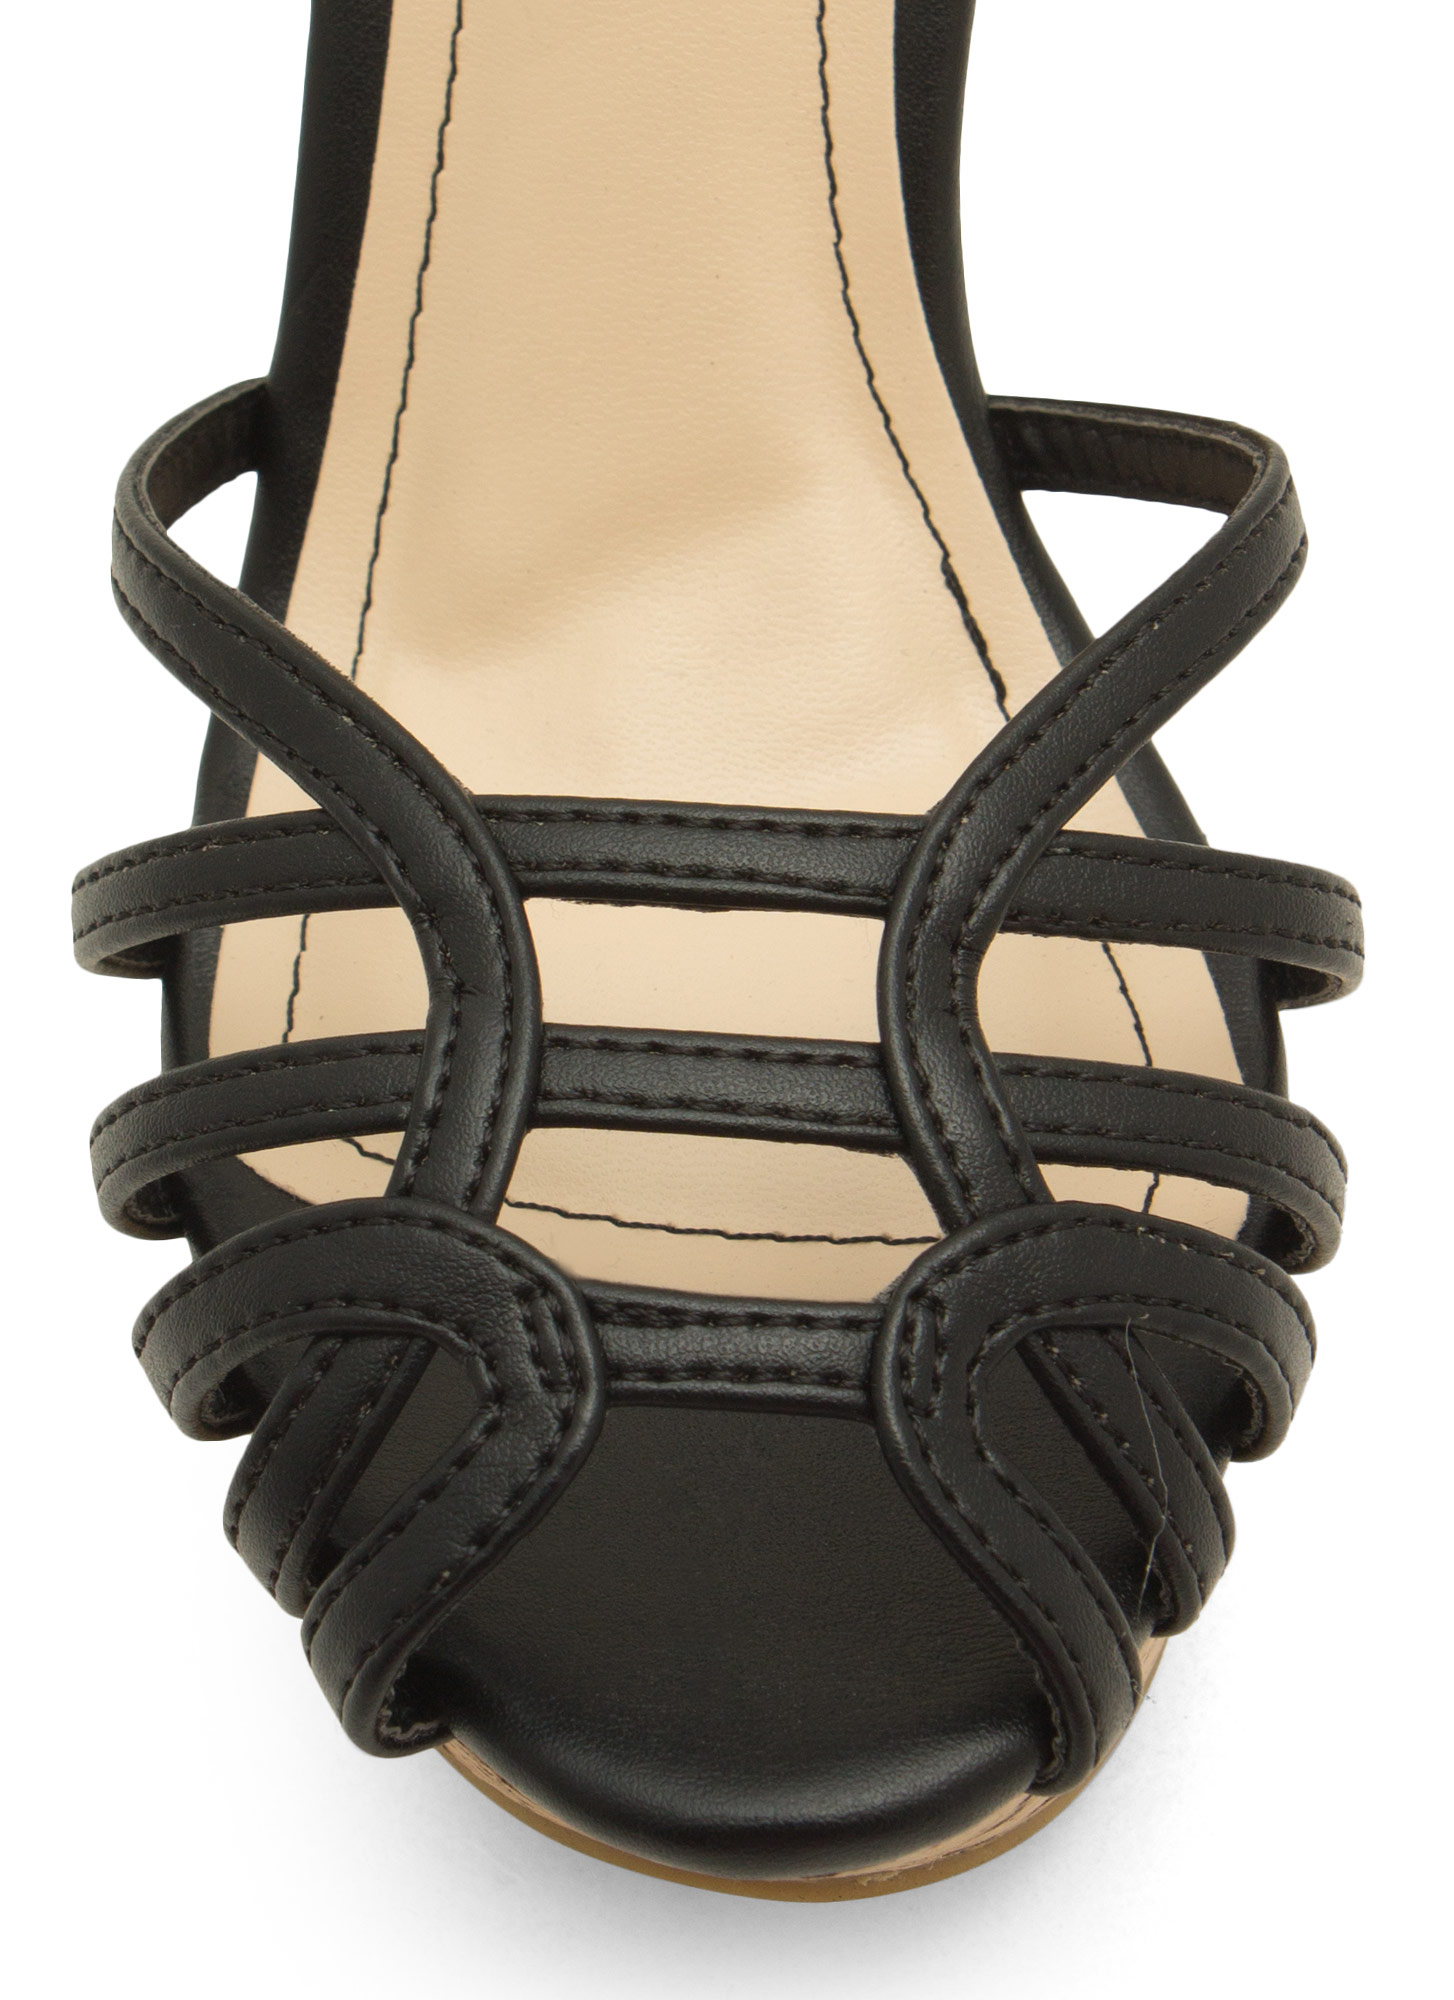 Corked 'N Caged Platform Wedges BLACK